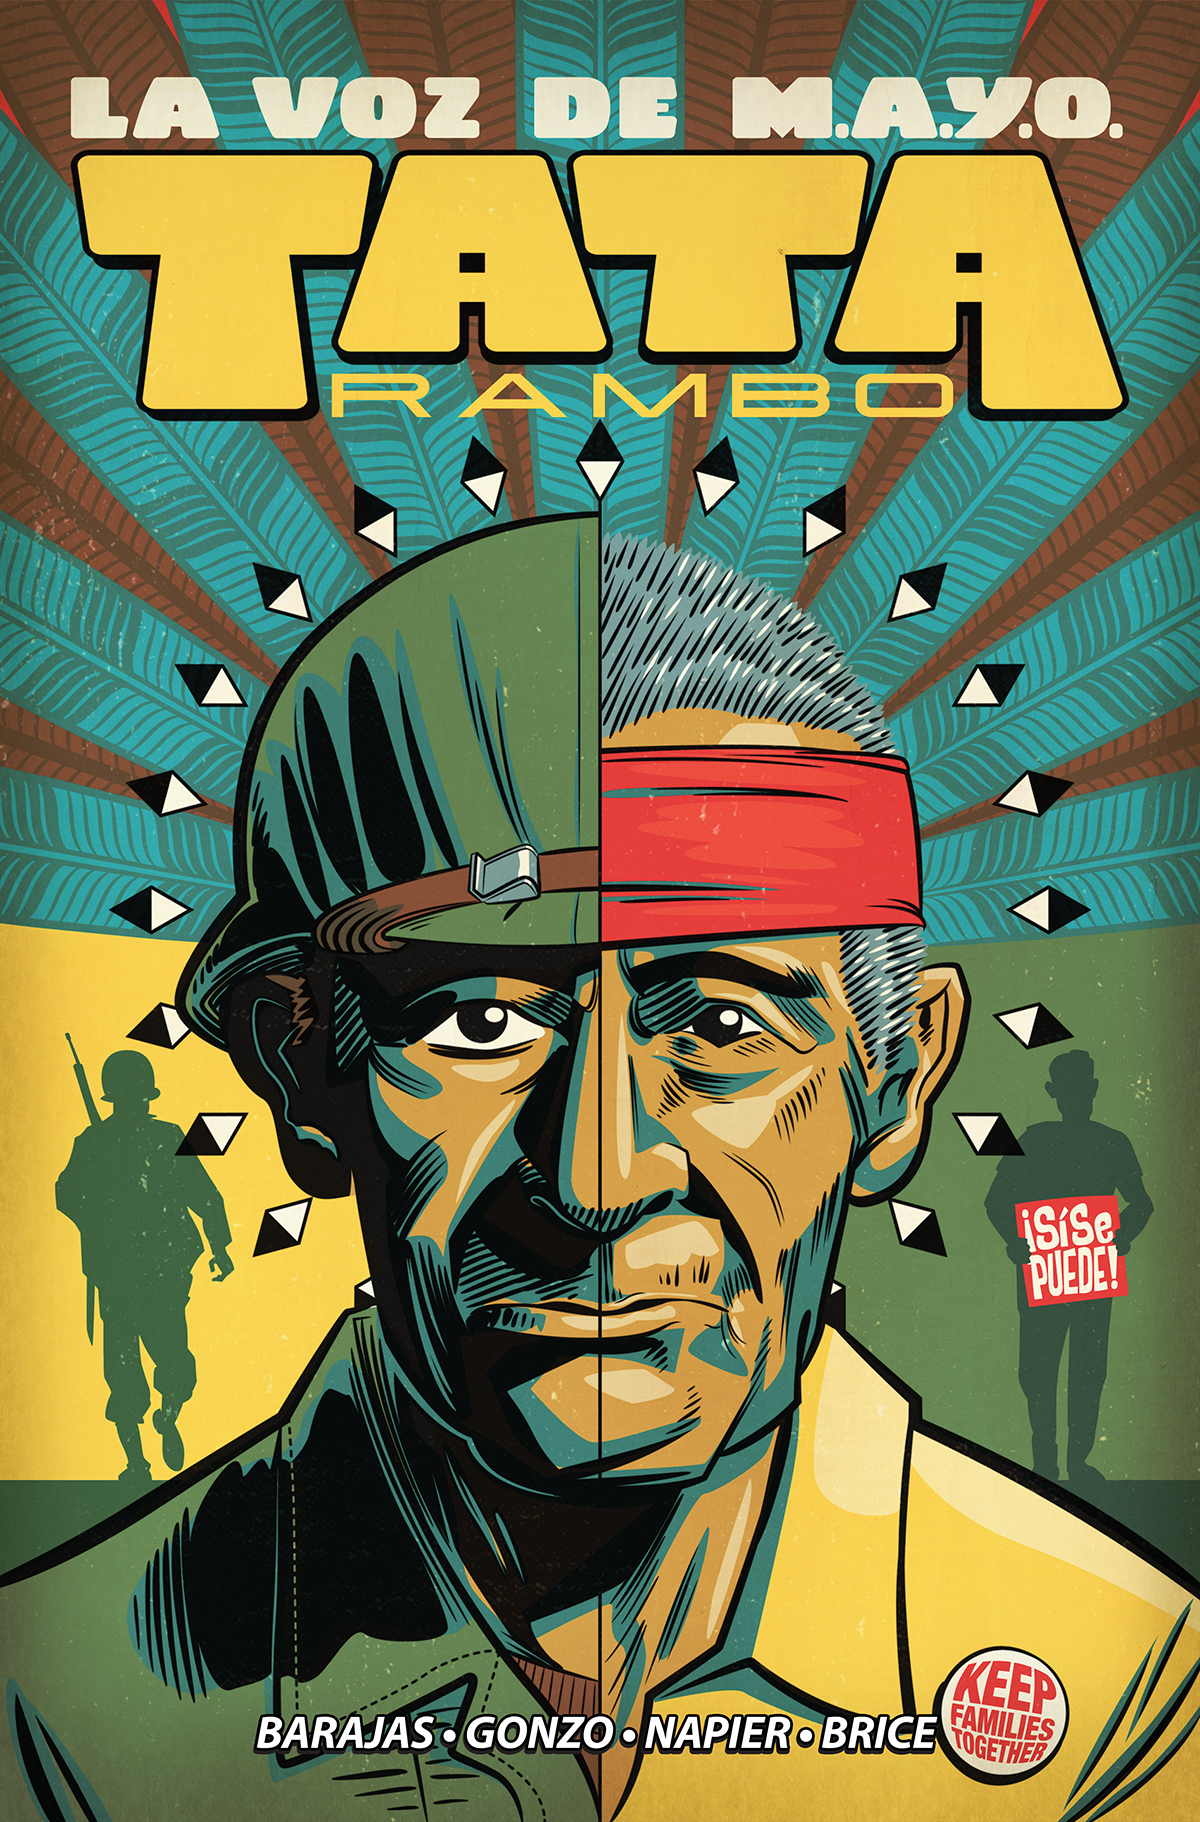 Graphic Novels for Fall 2019: La Voz De M.A.Y.O.: Tata Rambo, Vol. 1